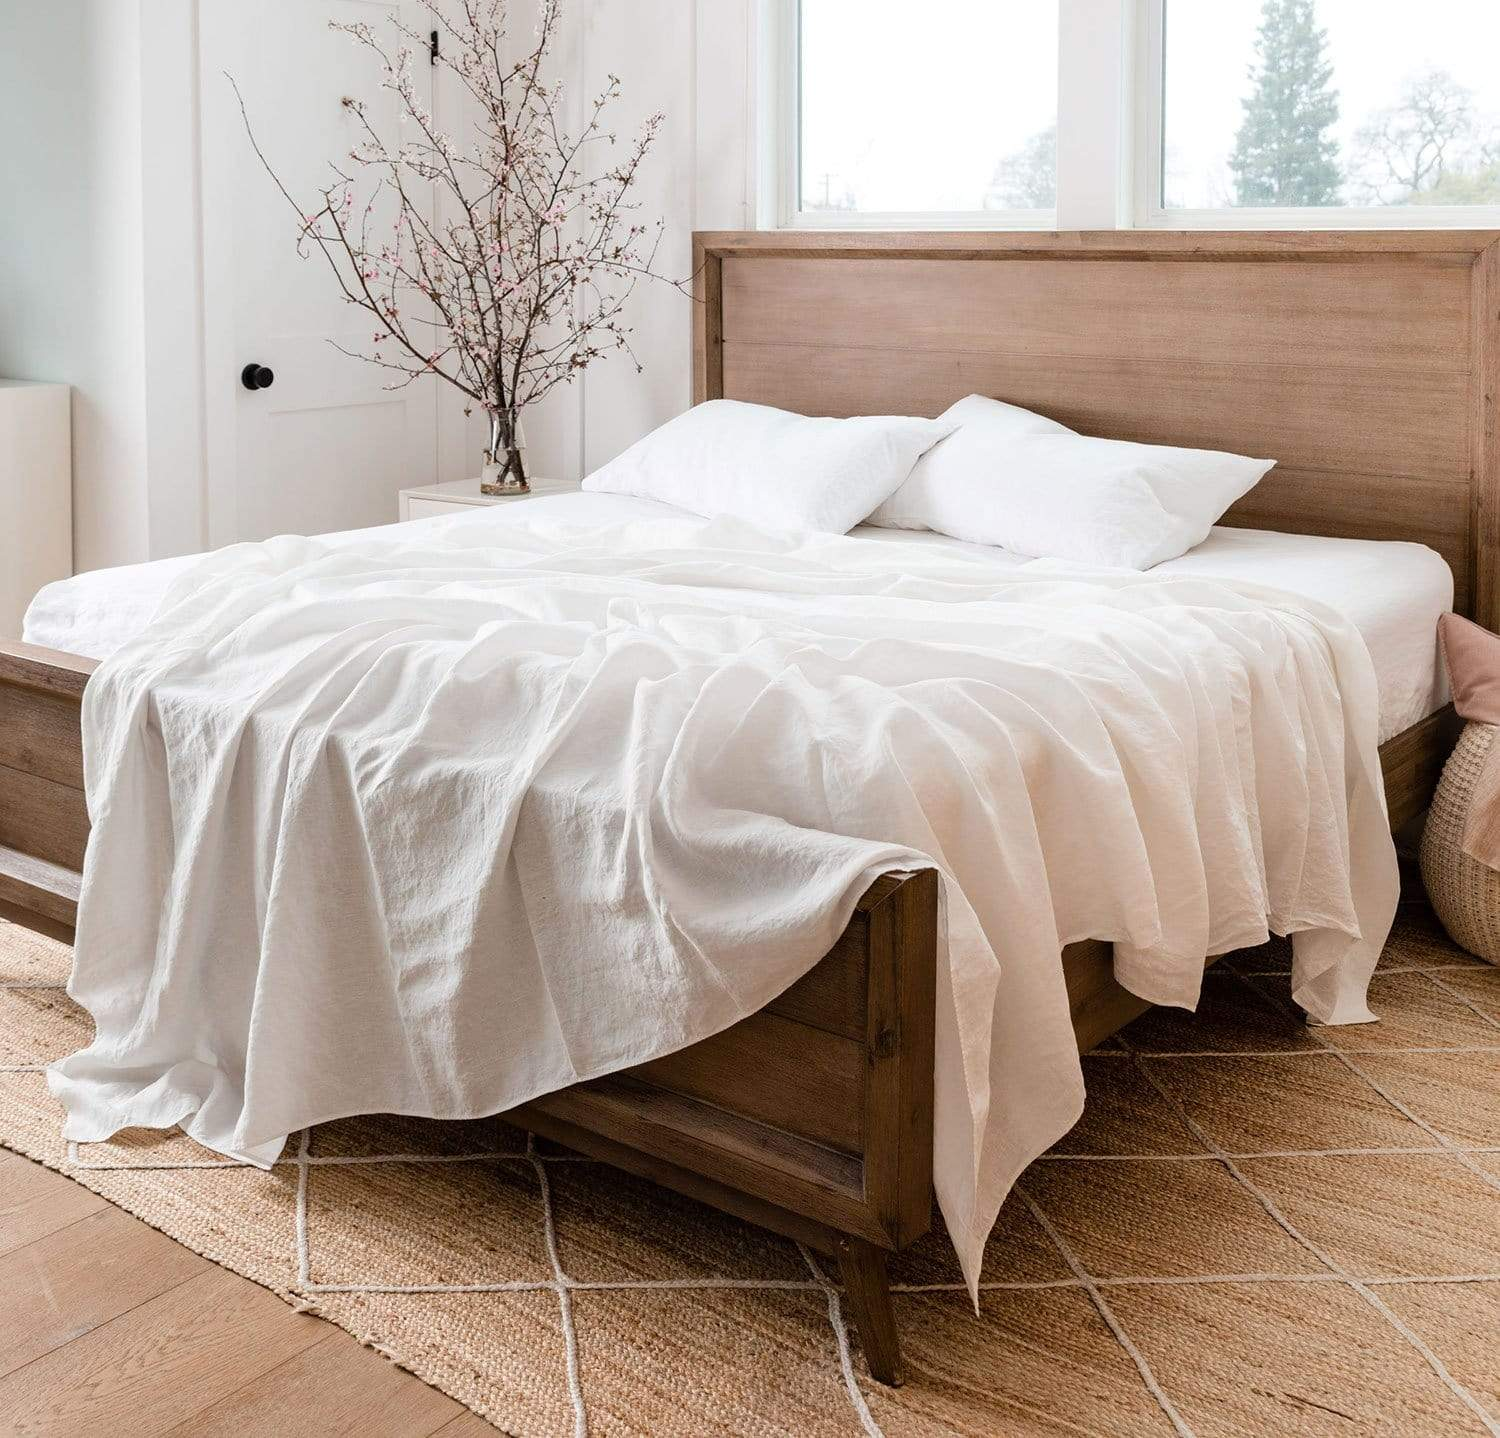 Twin//Full//Queen//King Size Bed Sheet Set Fitted Sheet Bottom Sheets Pillowcase